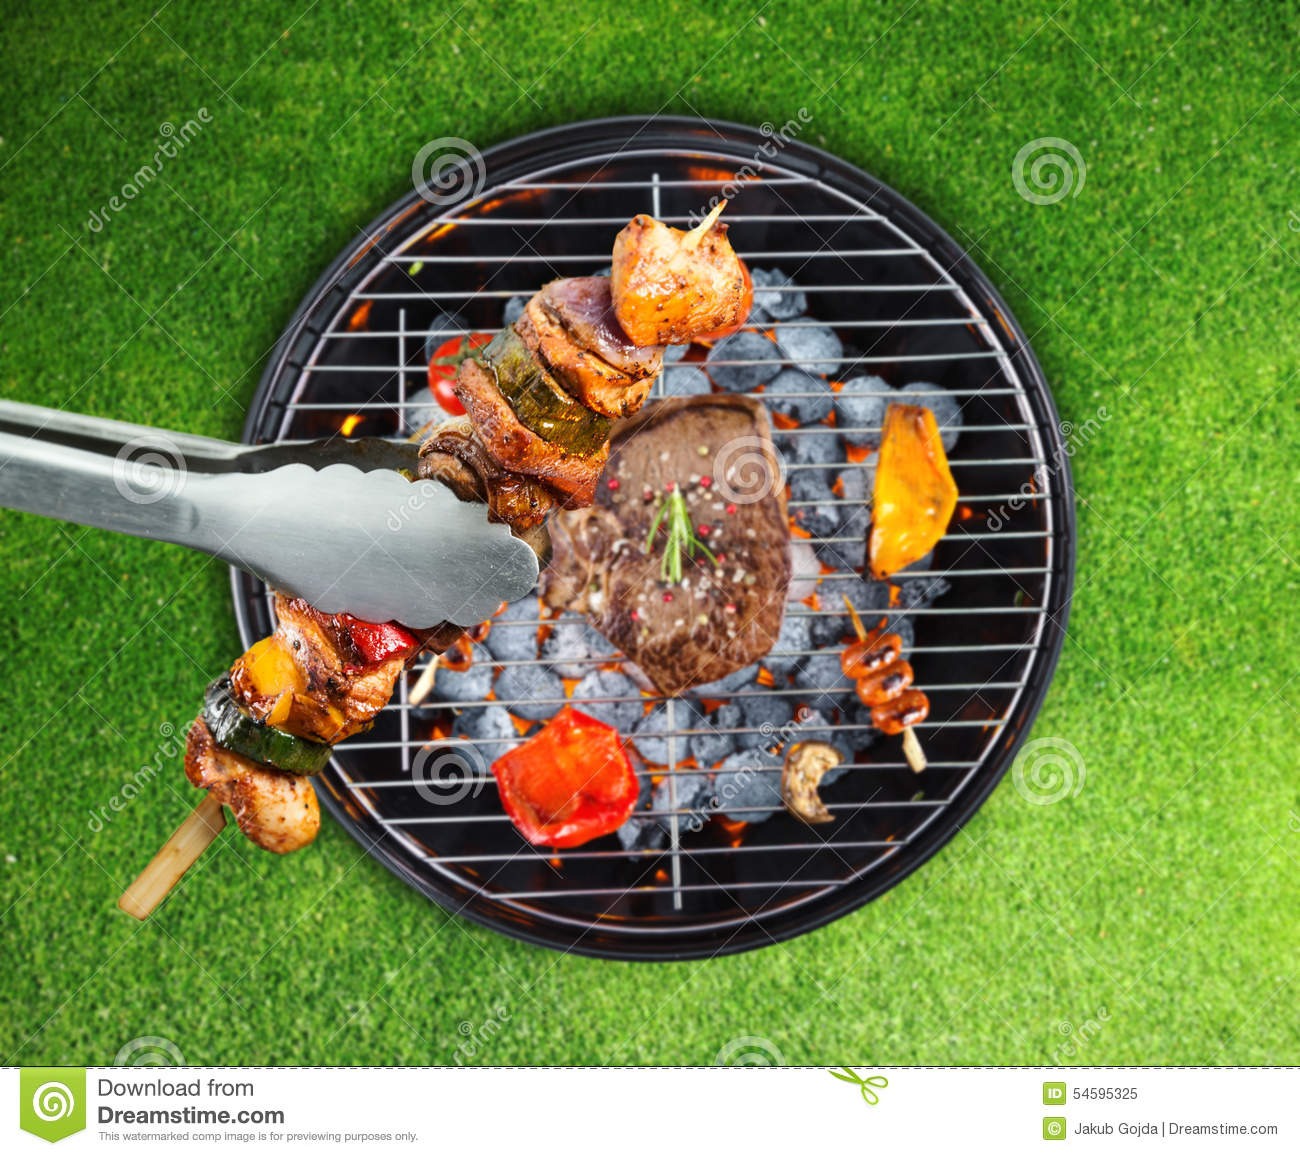 Barbecue grill with various kinds of meat